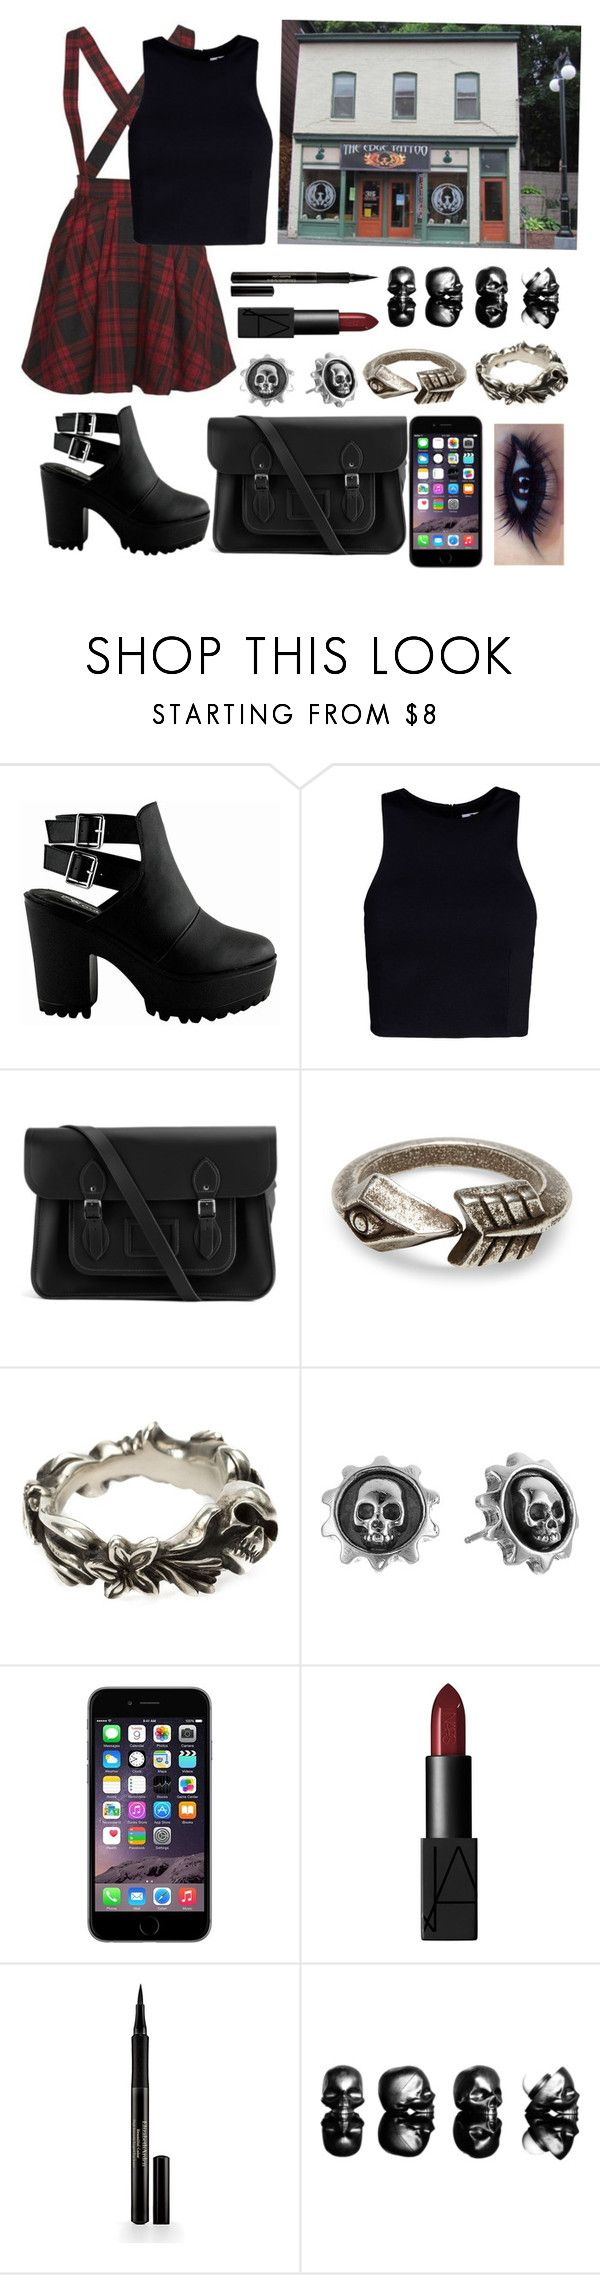 """""""Tattoo artist"""" by annairwin21 ❤ liked on Polyvore featuring Mini Cream, T By Alexander Wang, The Cambridge Satchel Company, TOMS, Werkstatt:München, King Baby Studio, NARS Cosmetics, Elizabeth Arden and Houghton"""